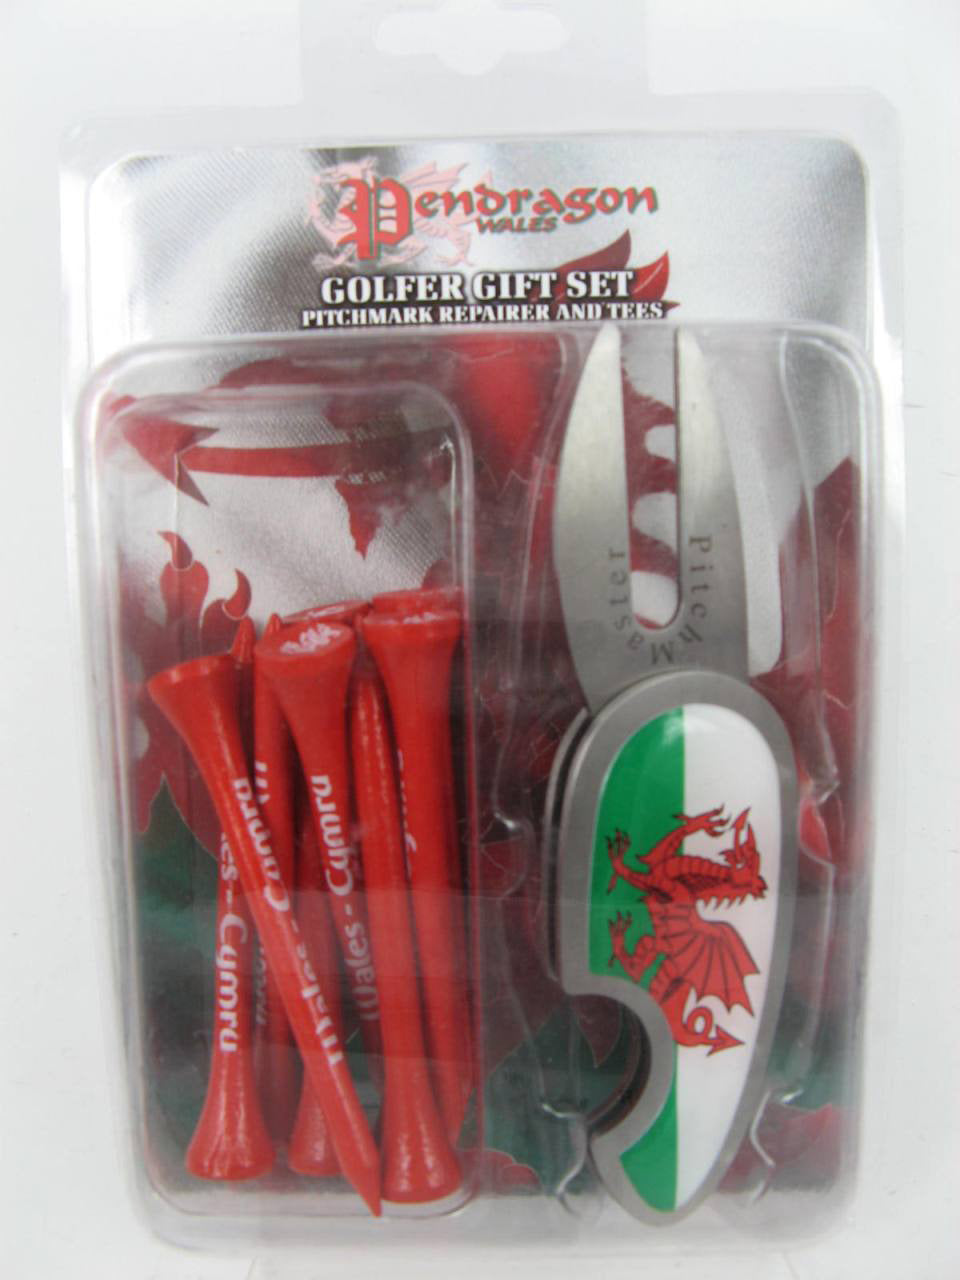 Welsh Pitchmark Repairer & Wales Golf Tees Set